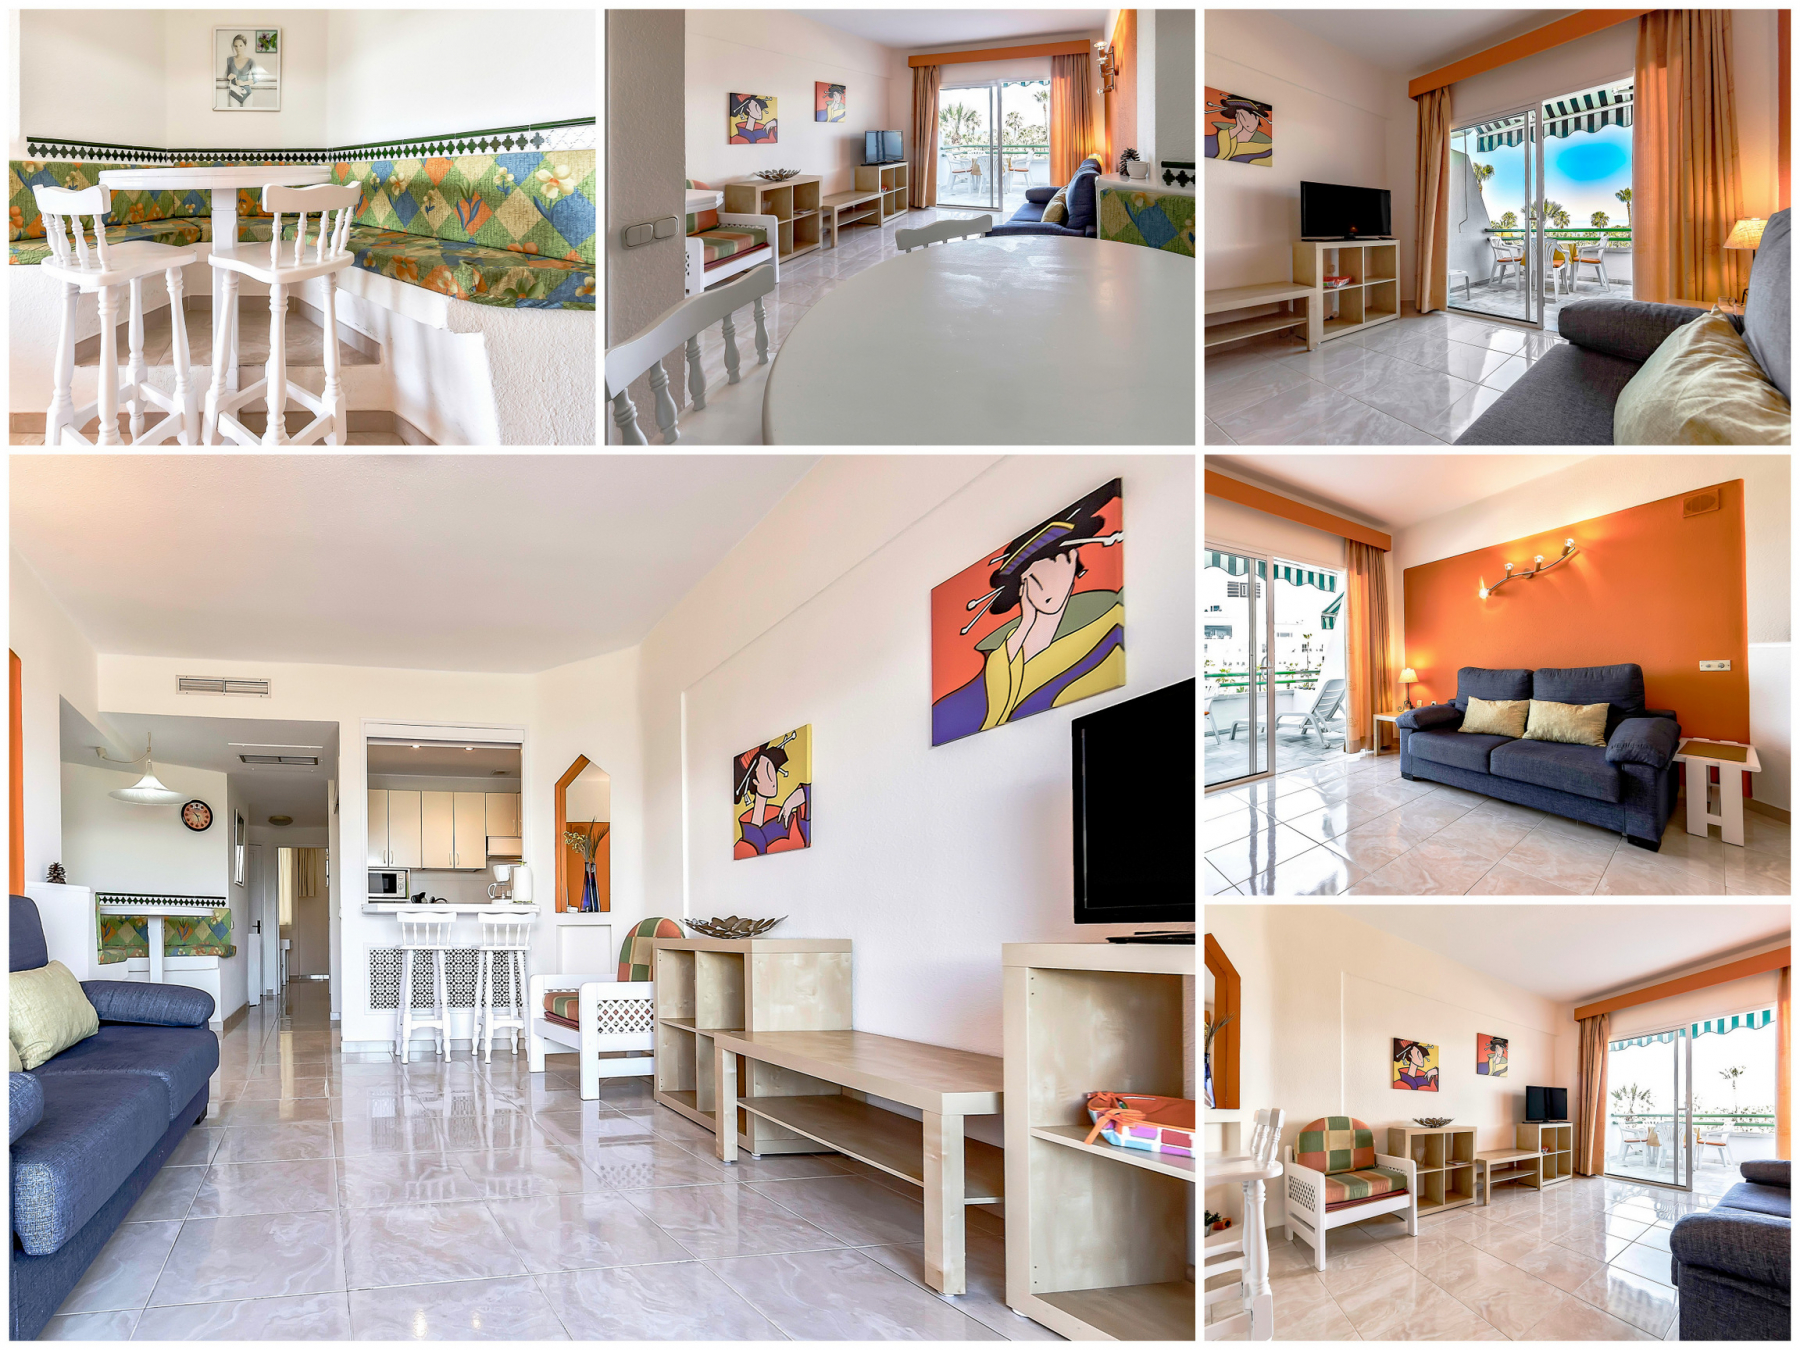 Properties for Sale in Tenerife, Canary Islands, Spain | SylkWayStar Real Estate. Lovely 1 Bedroom Apartment - Altamira. Image-25853